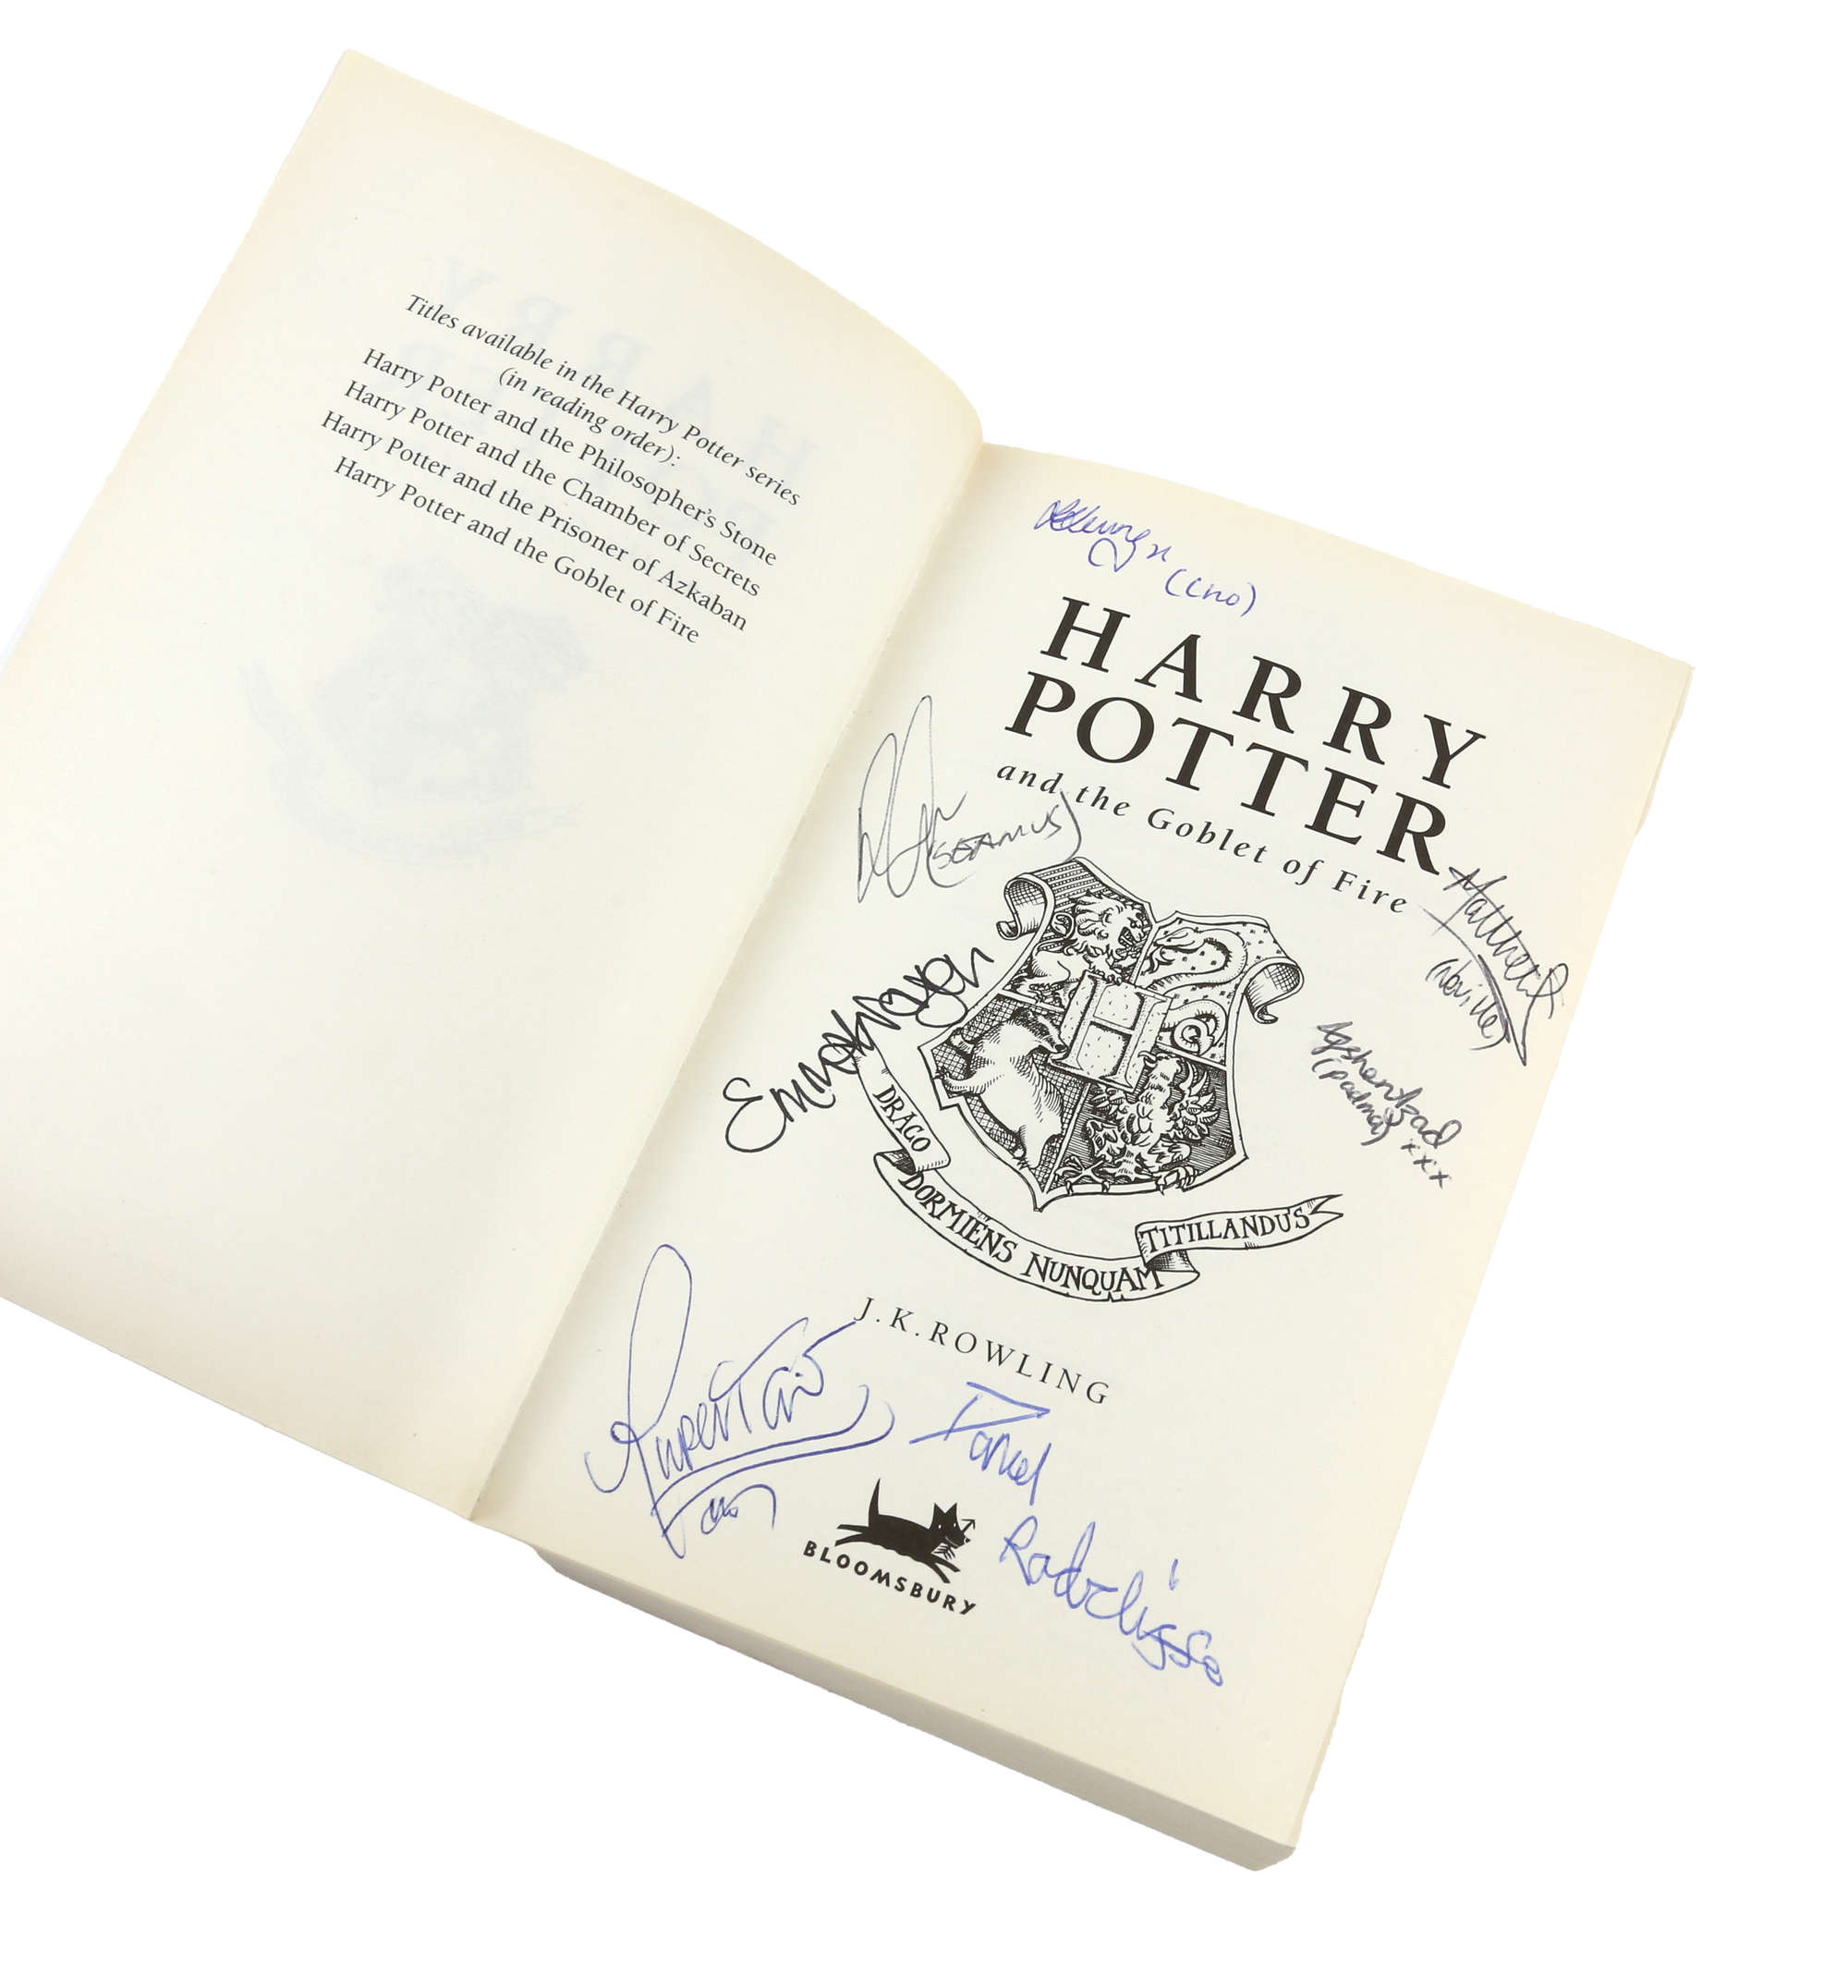 """The most valuable item from the pieces consigned by the crew member is a paperback copy of """"Harry Potter and the Goblet of Fire"""" that was signed by several members of the cast. It is estimated to go for between £700 and £1,000."""